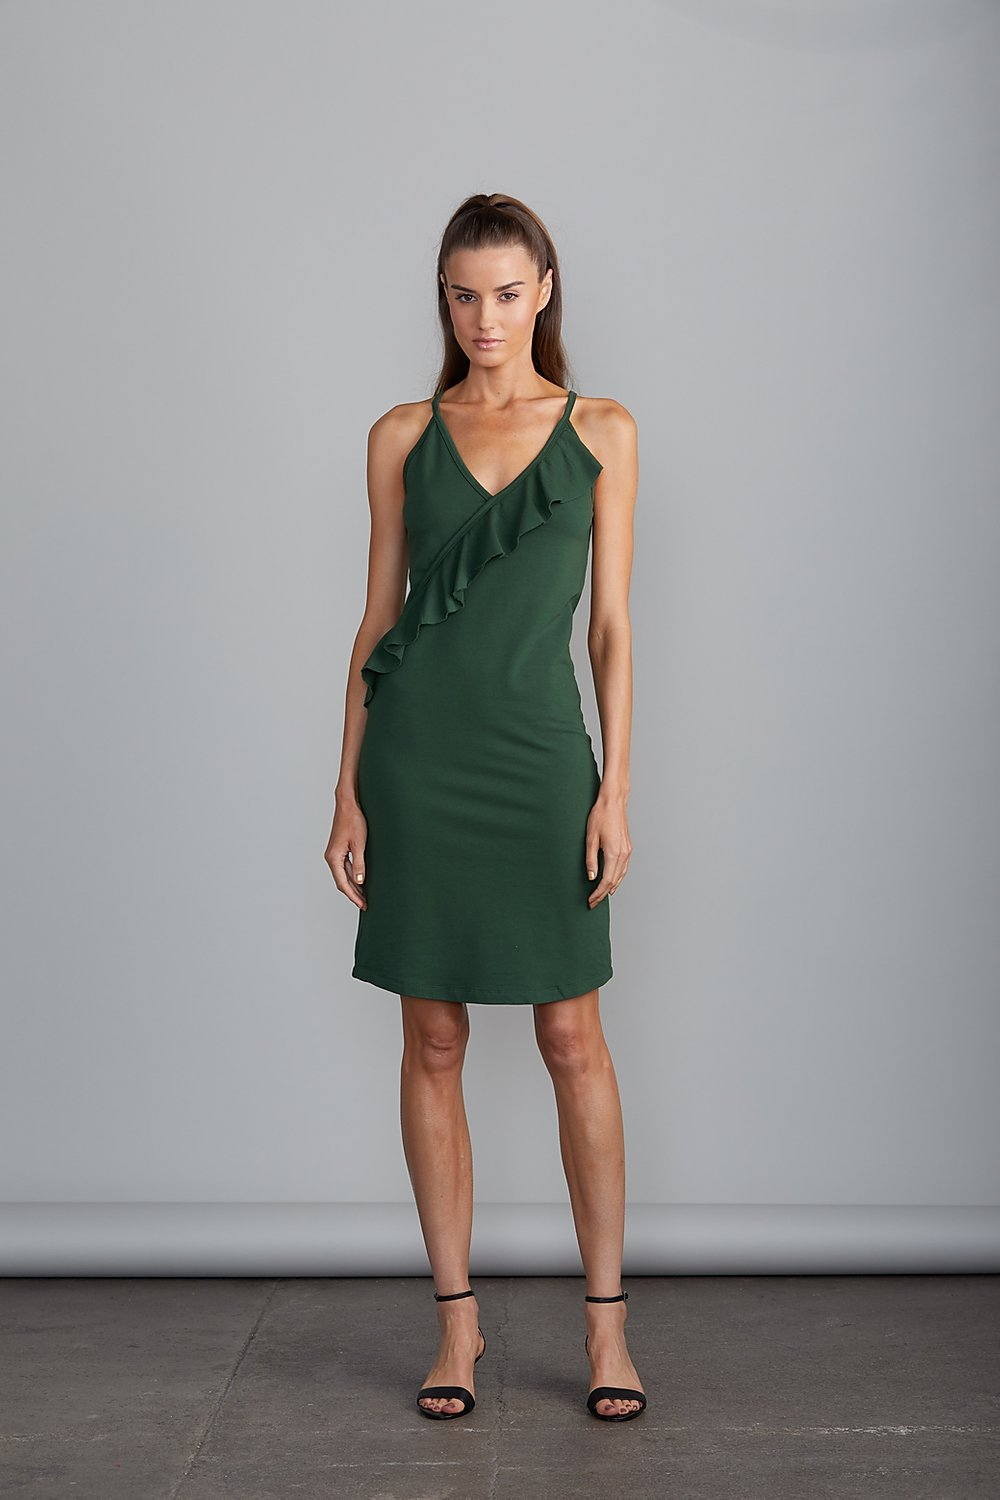 Law Dress - civvies - indianapolis clothing boutique